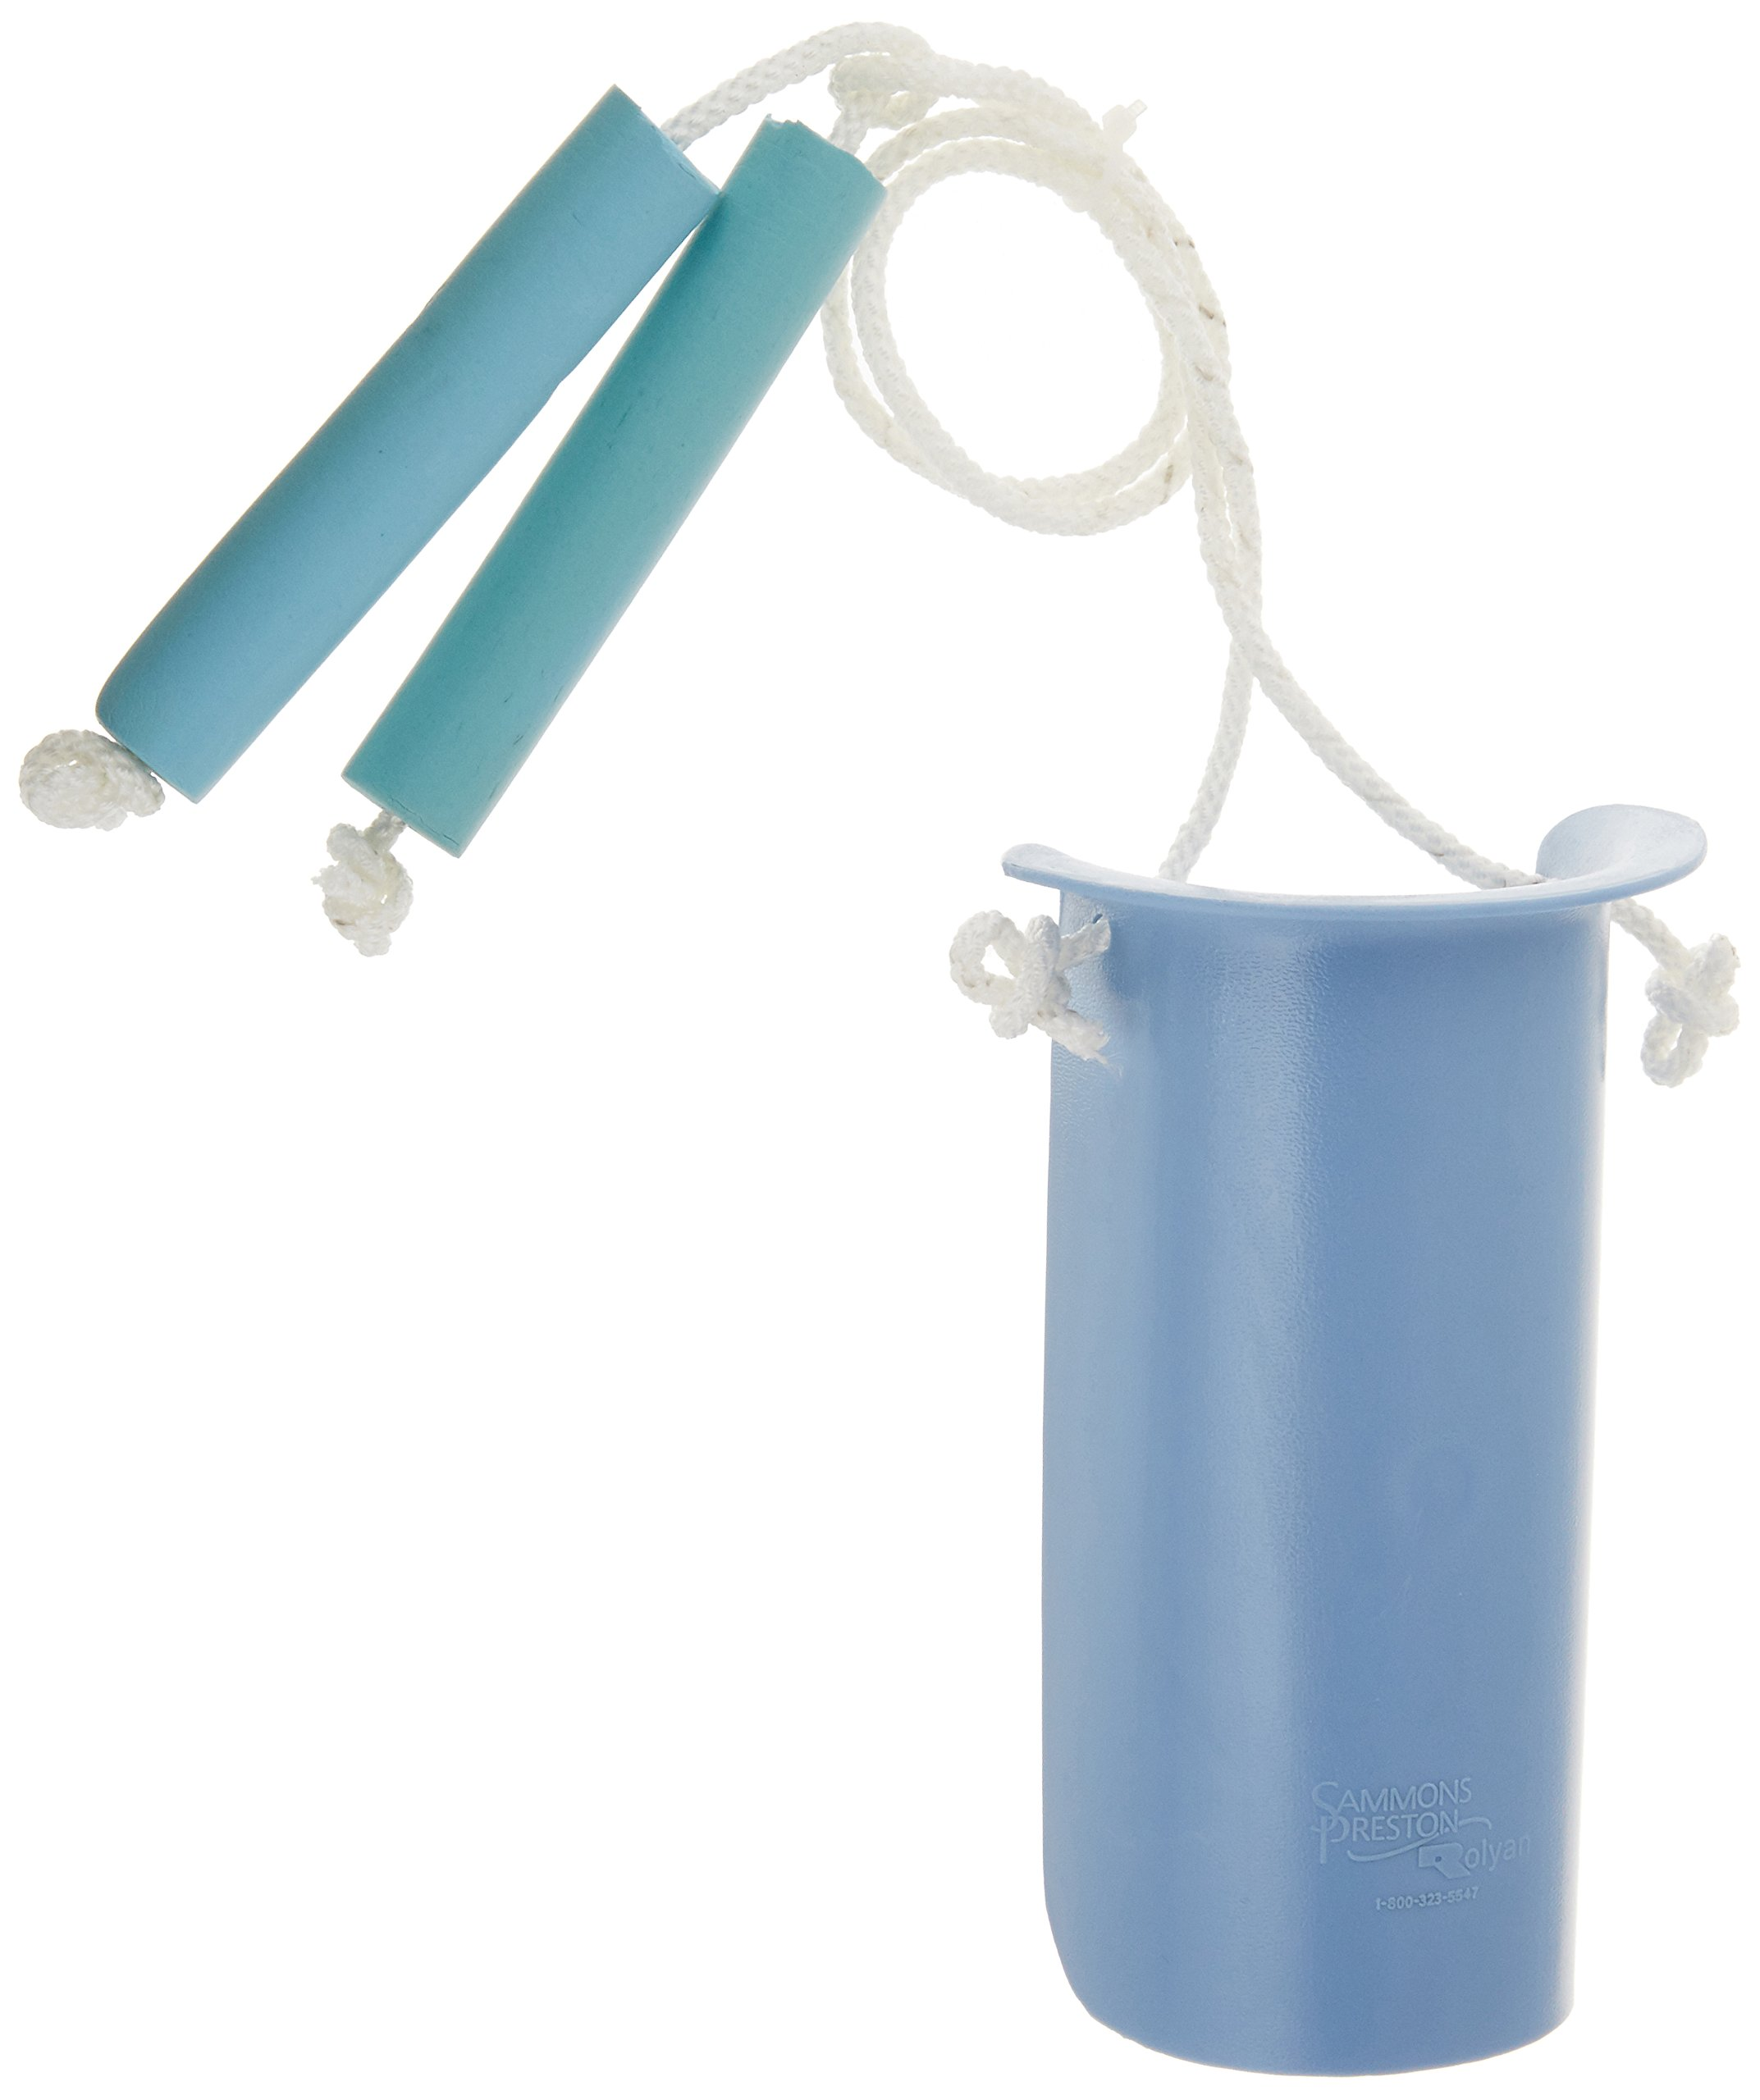 Sammons Preston Sock and Stocking Aid with Built-Up Foam Handles, Pediatric Size Easy On Easy Off Aide with 19'' Rope & Foam Grip, Sock Pull On Assist, Children Size by Sammons Preston